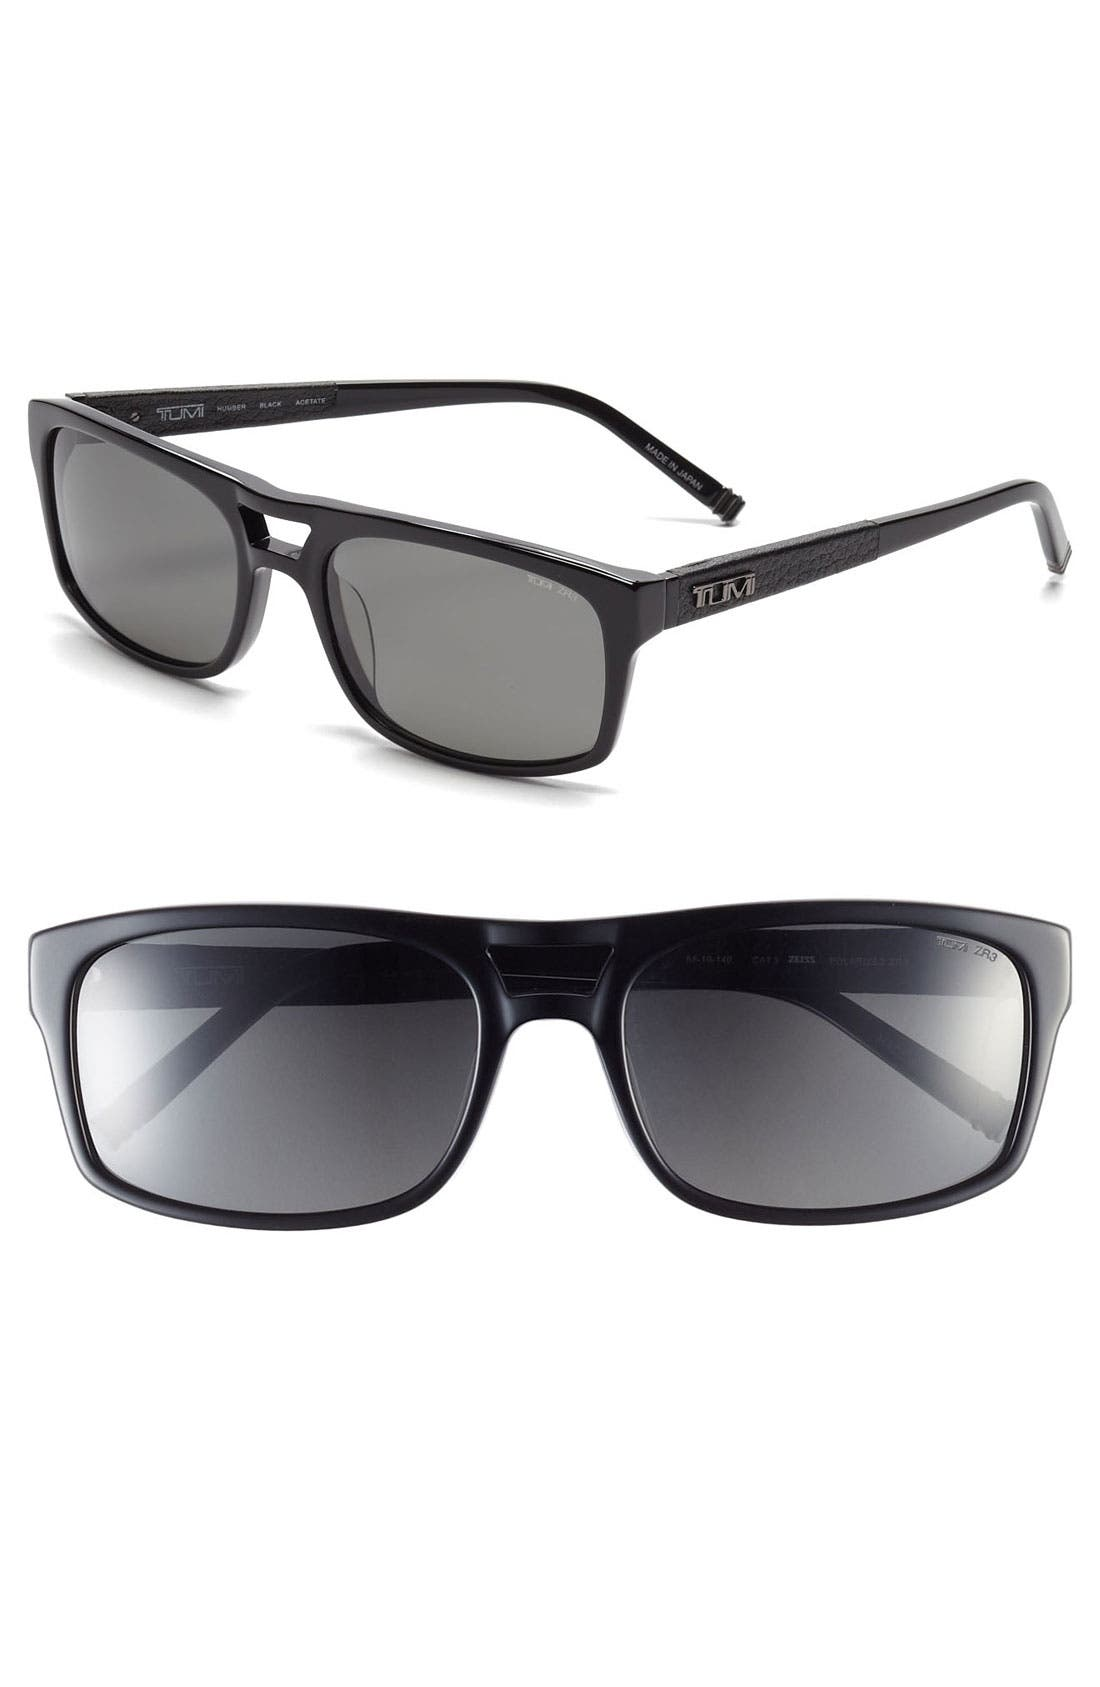 Main Image - Tumi 'Humber' 58mm Polarized Sunglasses